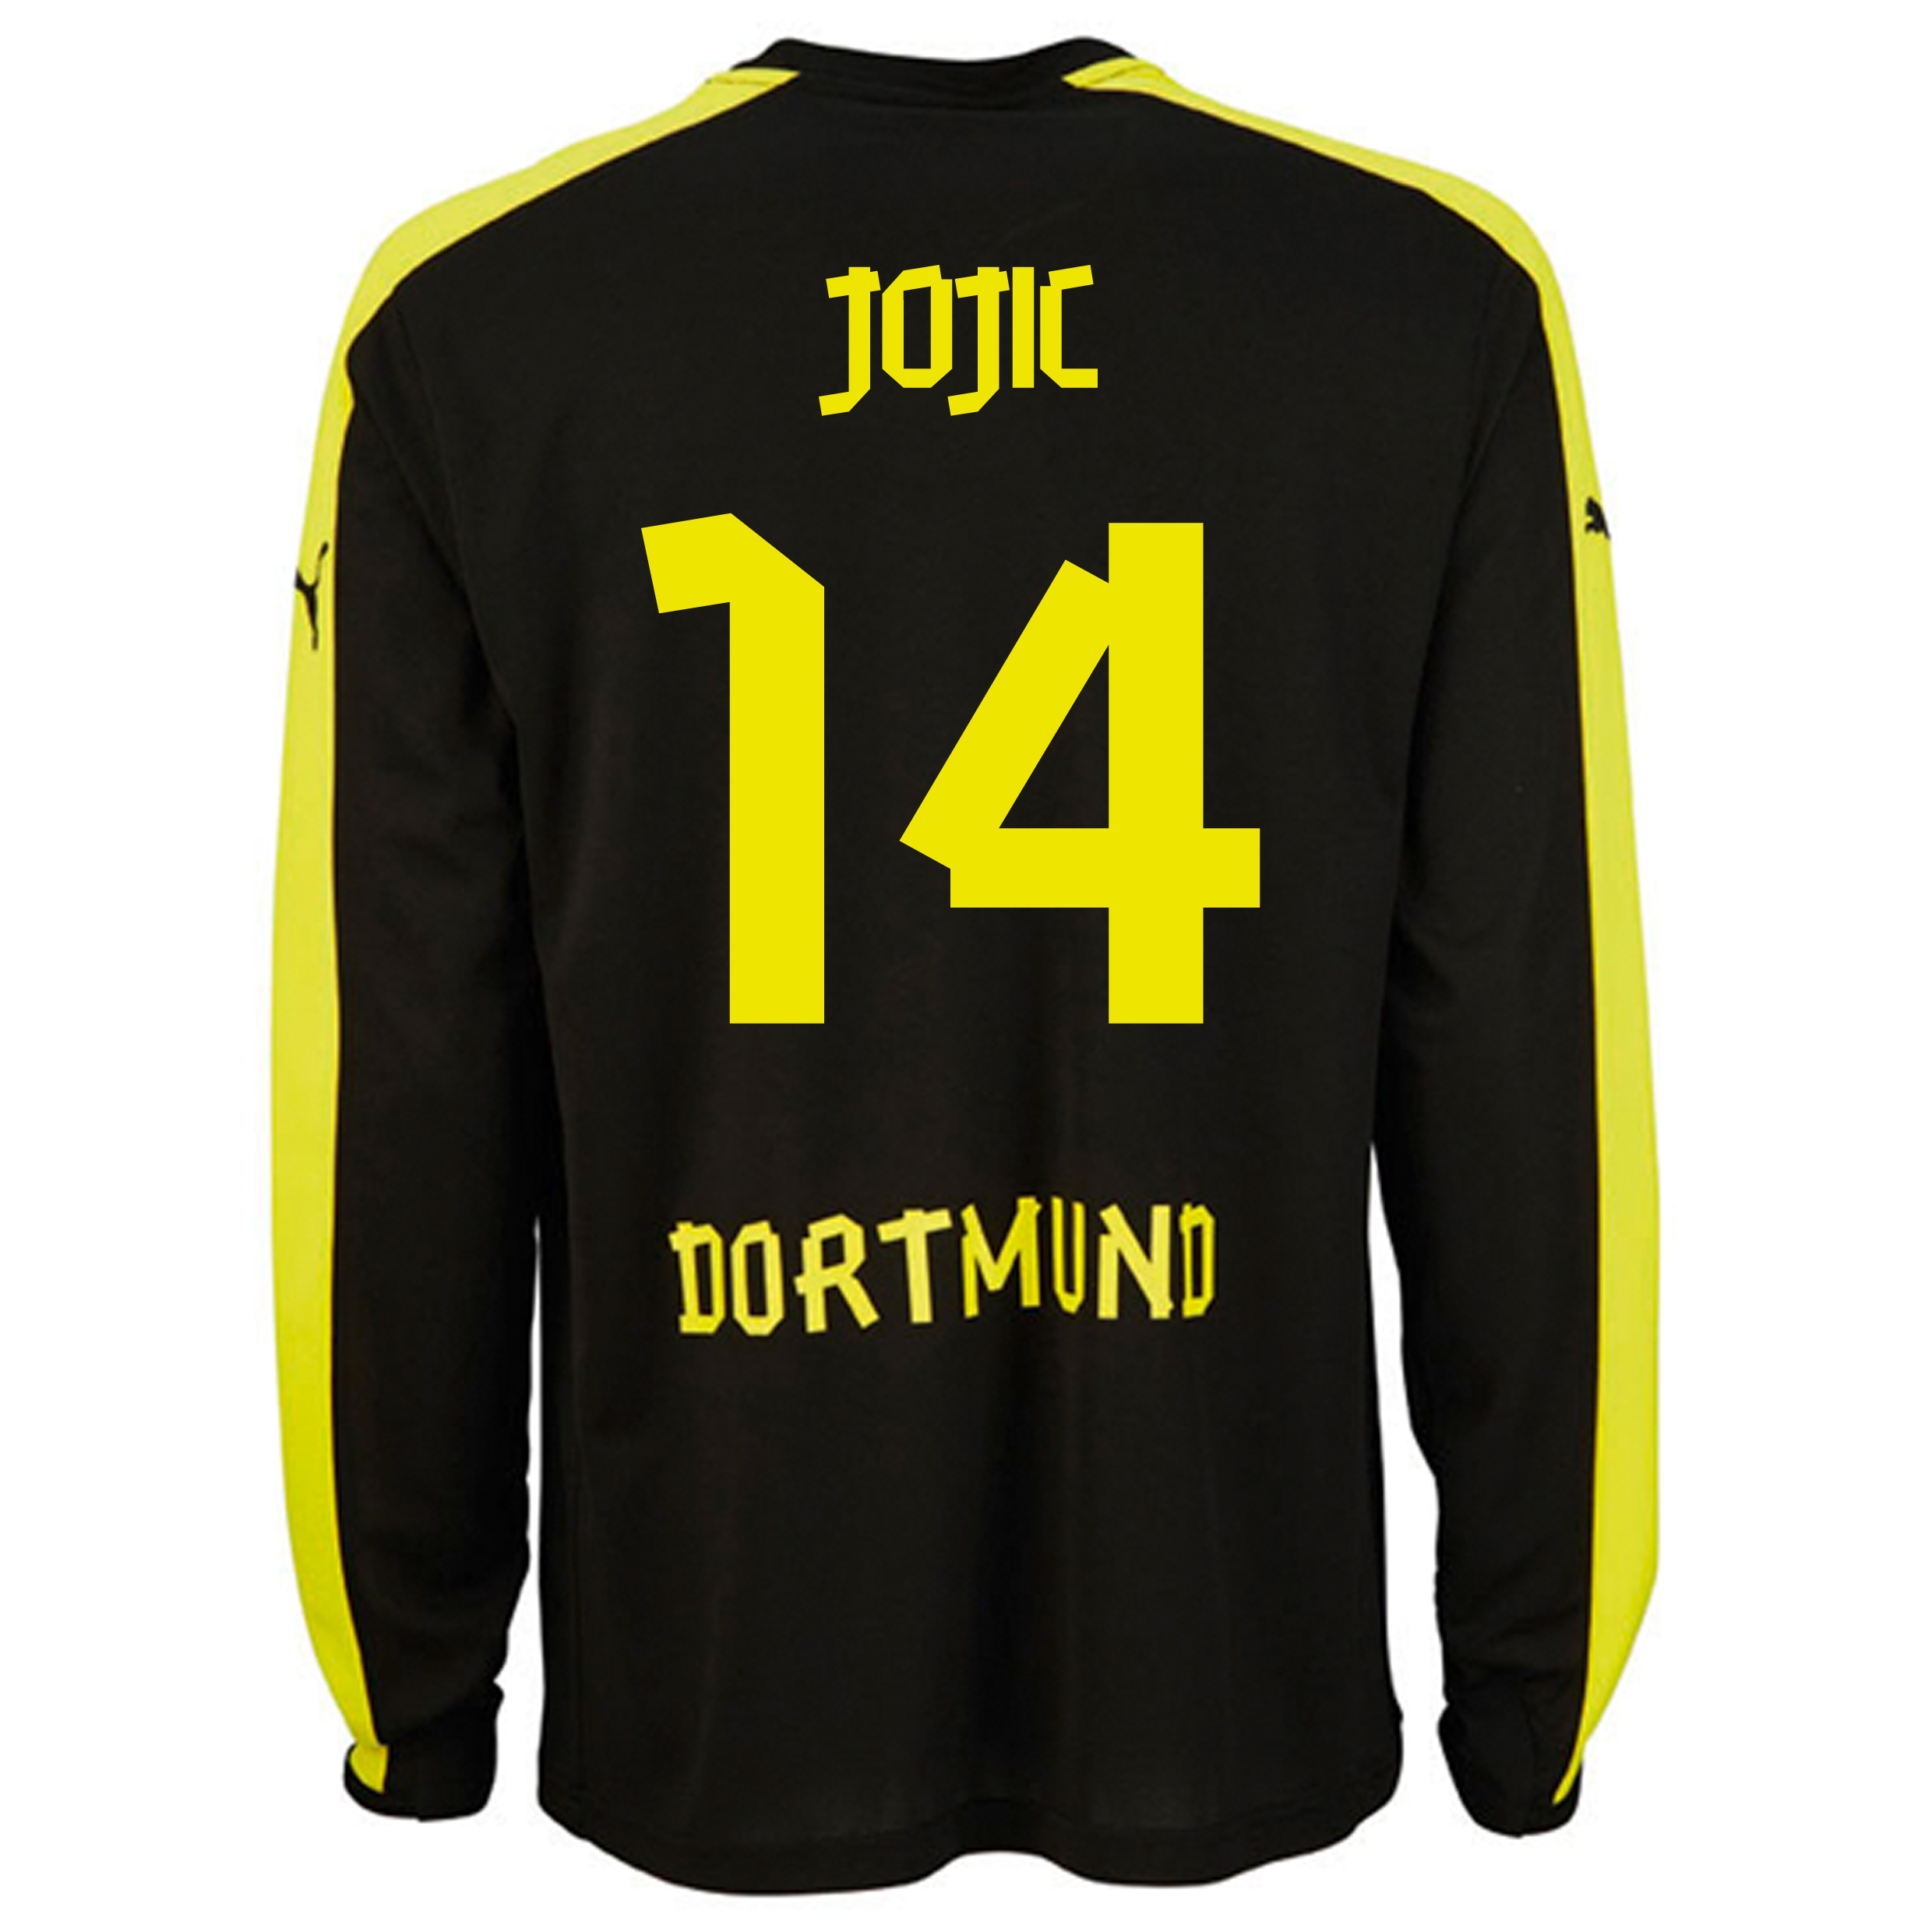 BVB Away Shirt 2013/14 - Long Sleeve with Jojic 14 printing